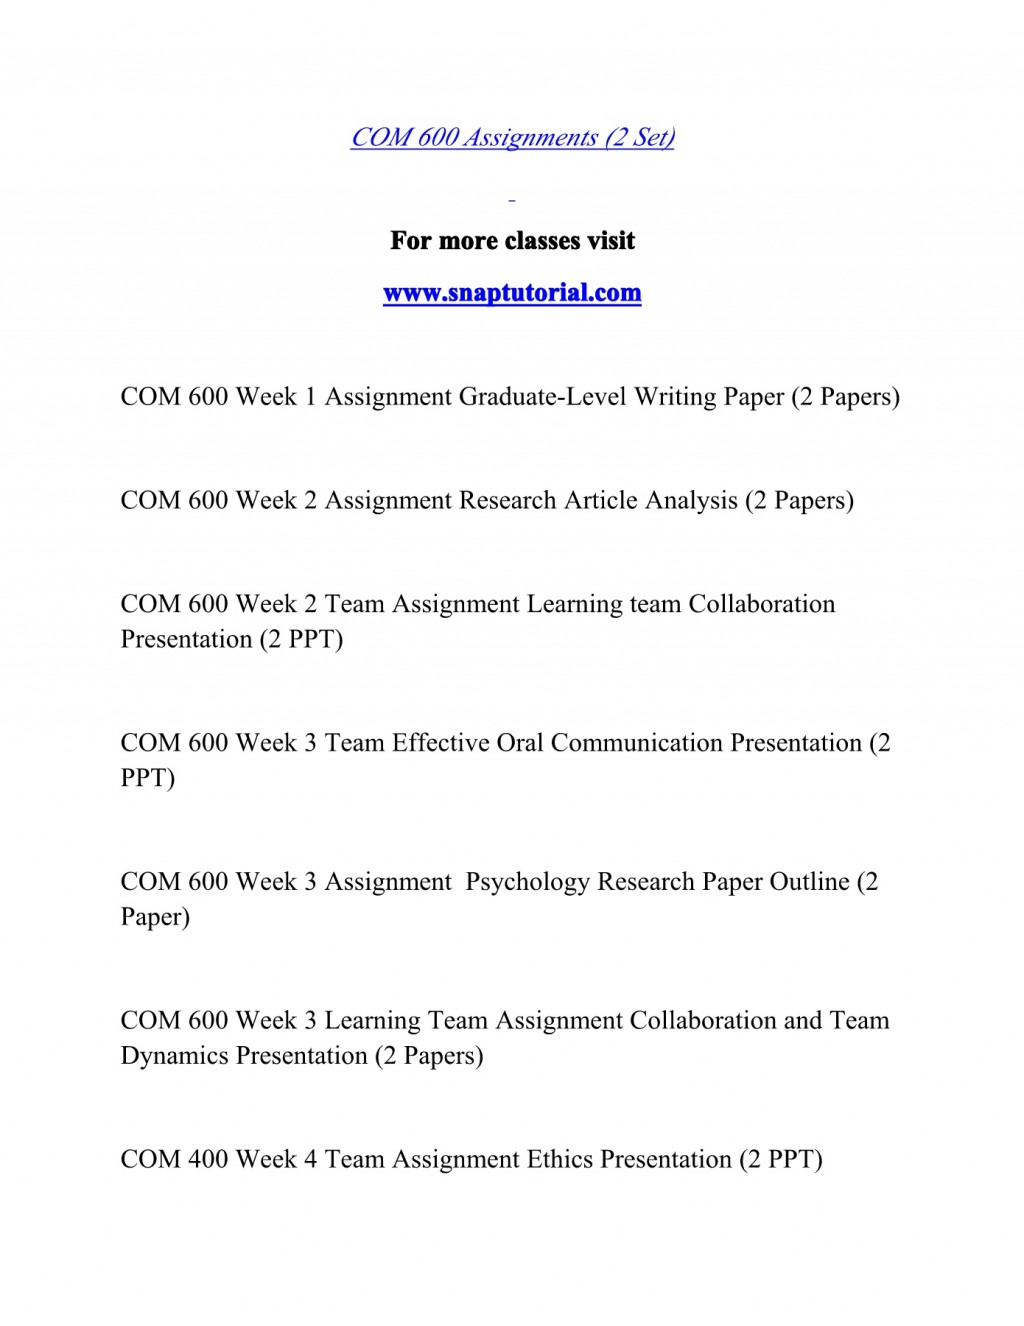 014 Psychology Research Paper Outline Com Striking 600 Com/600 Large